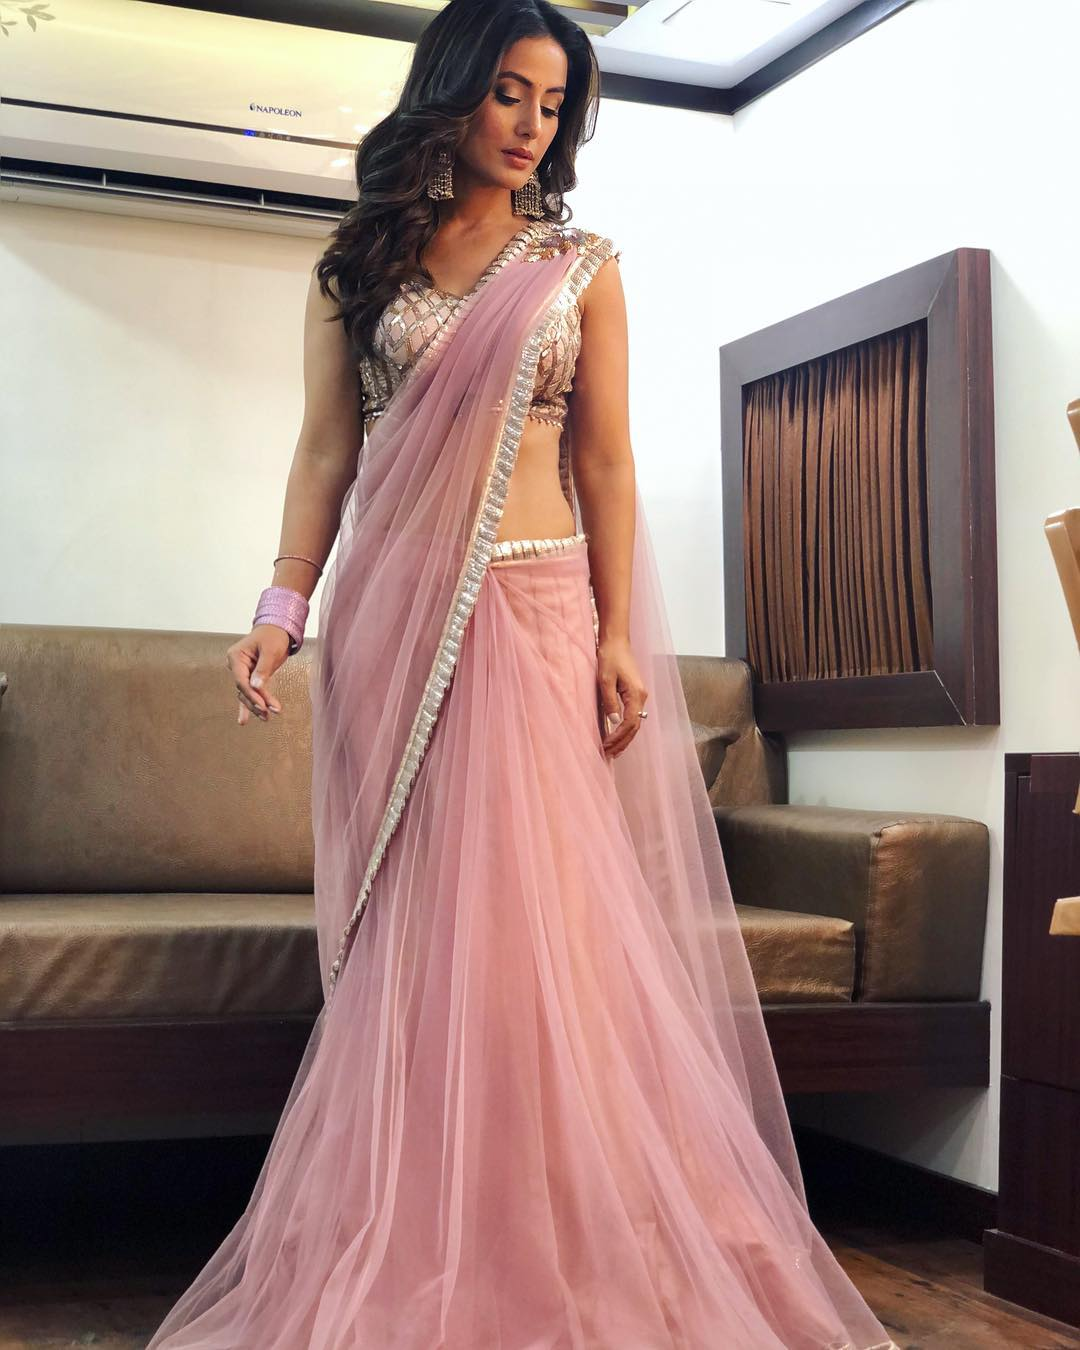 The perfect pink shade lehenga with minimal makeup